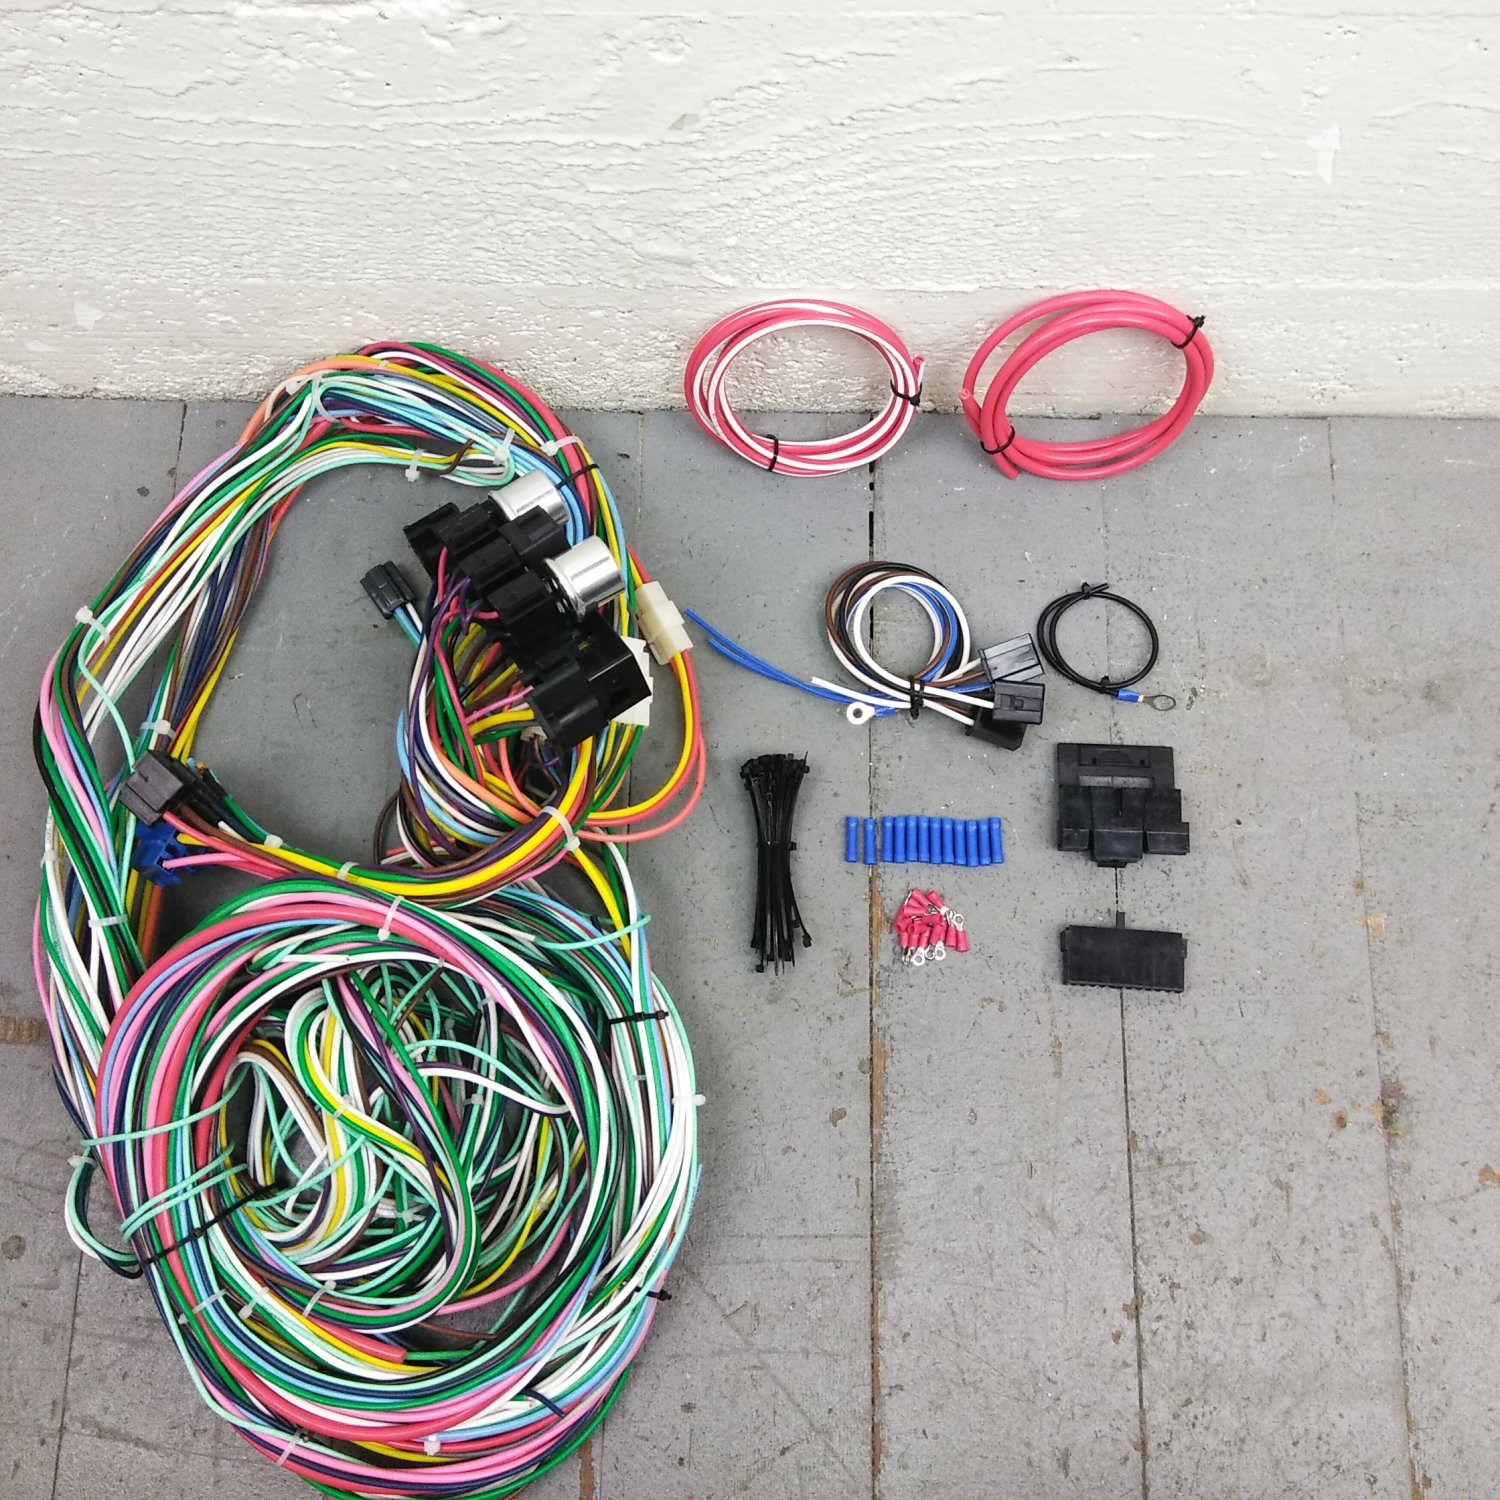 1941 Chevy Wiring Harness Online Schematics Diagram Car Wire 1948 Upgrade Kit Fits Painless Cavalier